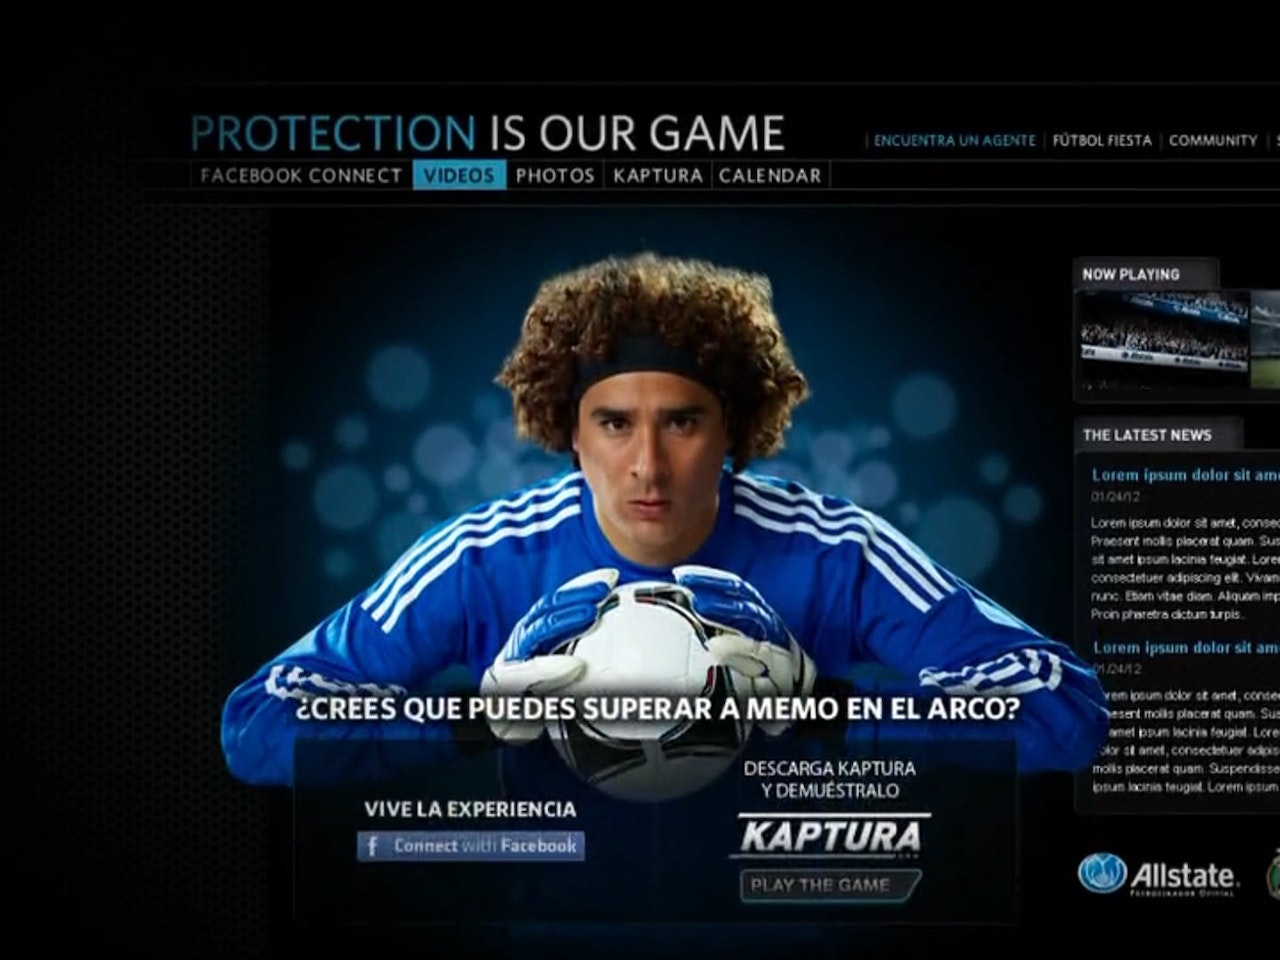 Allstate - Protection Is Our Game - Integrated Case Study